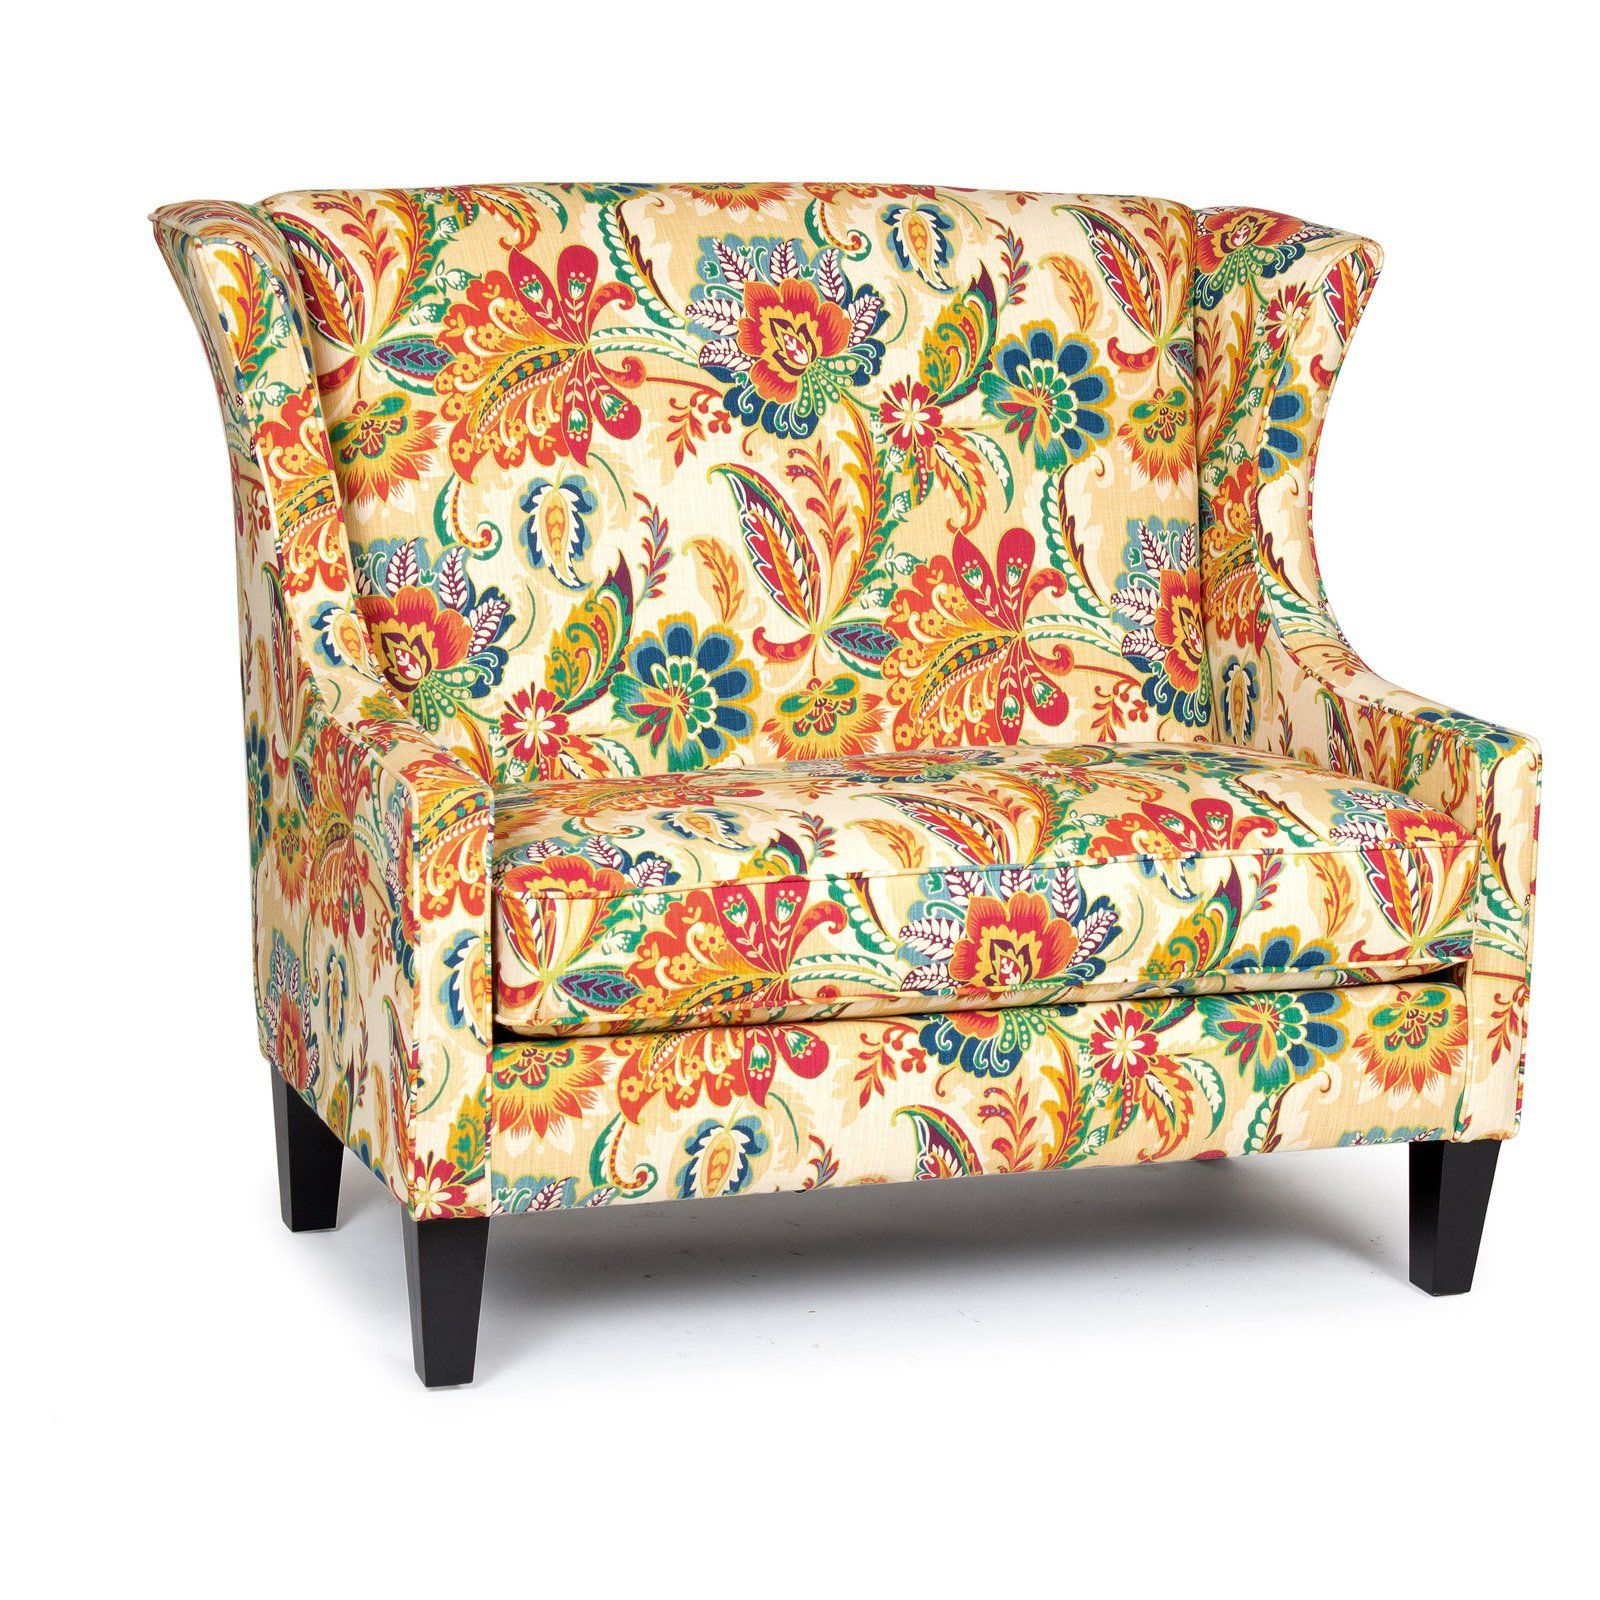 Chelsea Home Furniture Granby Settee Ayers Jewel Furniture Home Furniture Chair